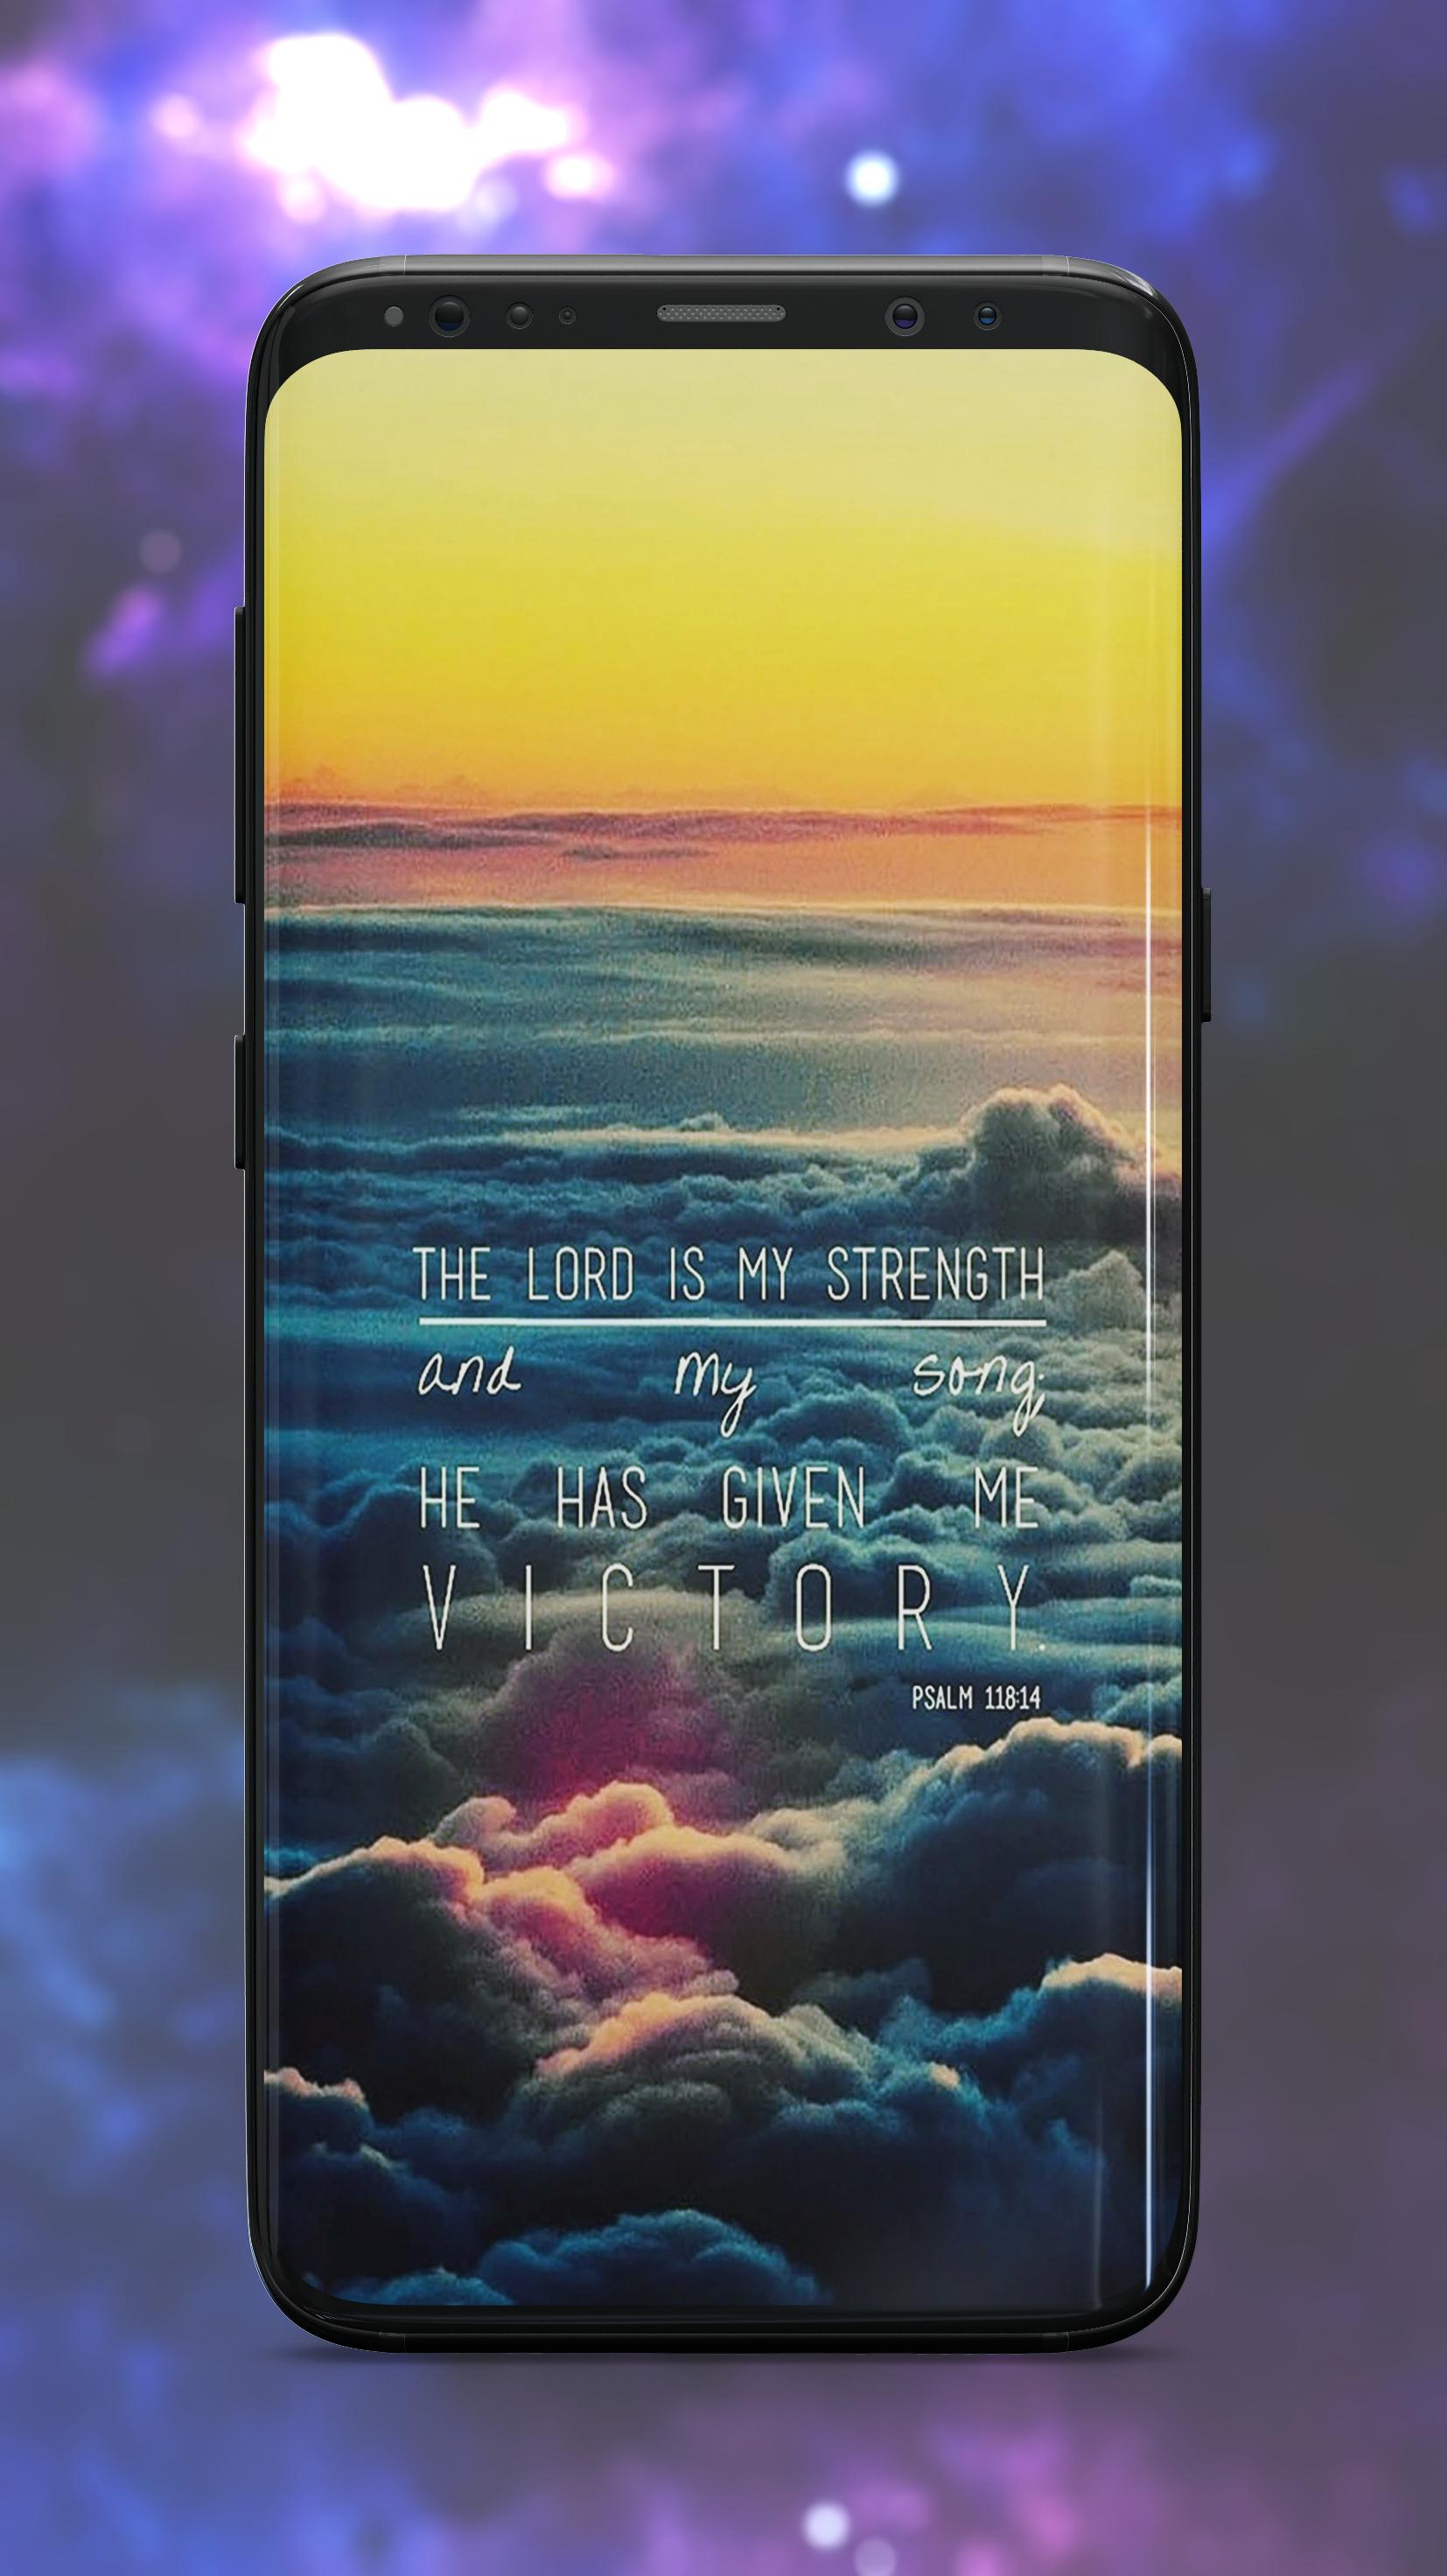 Christian Wallpaper for Android   APK Download 1654x2944